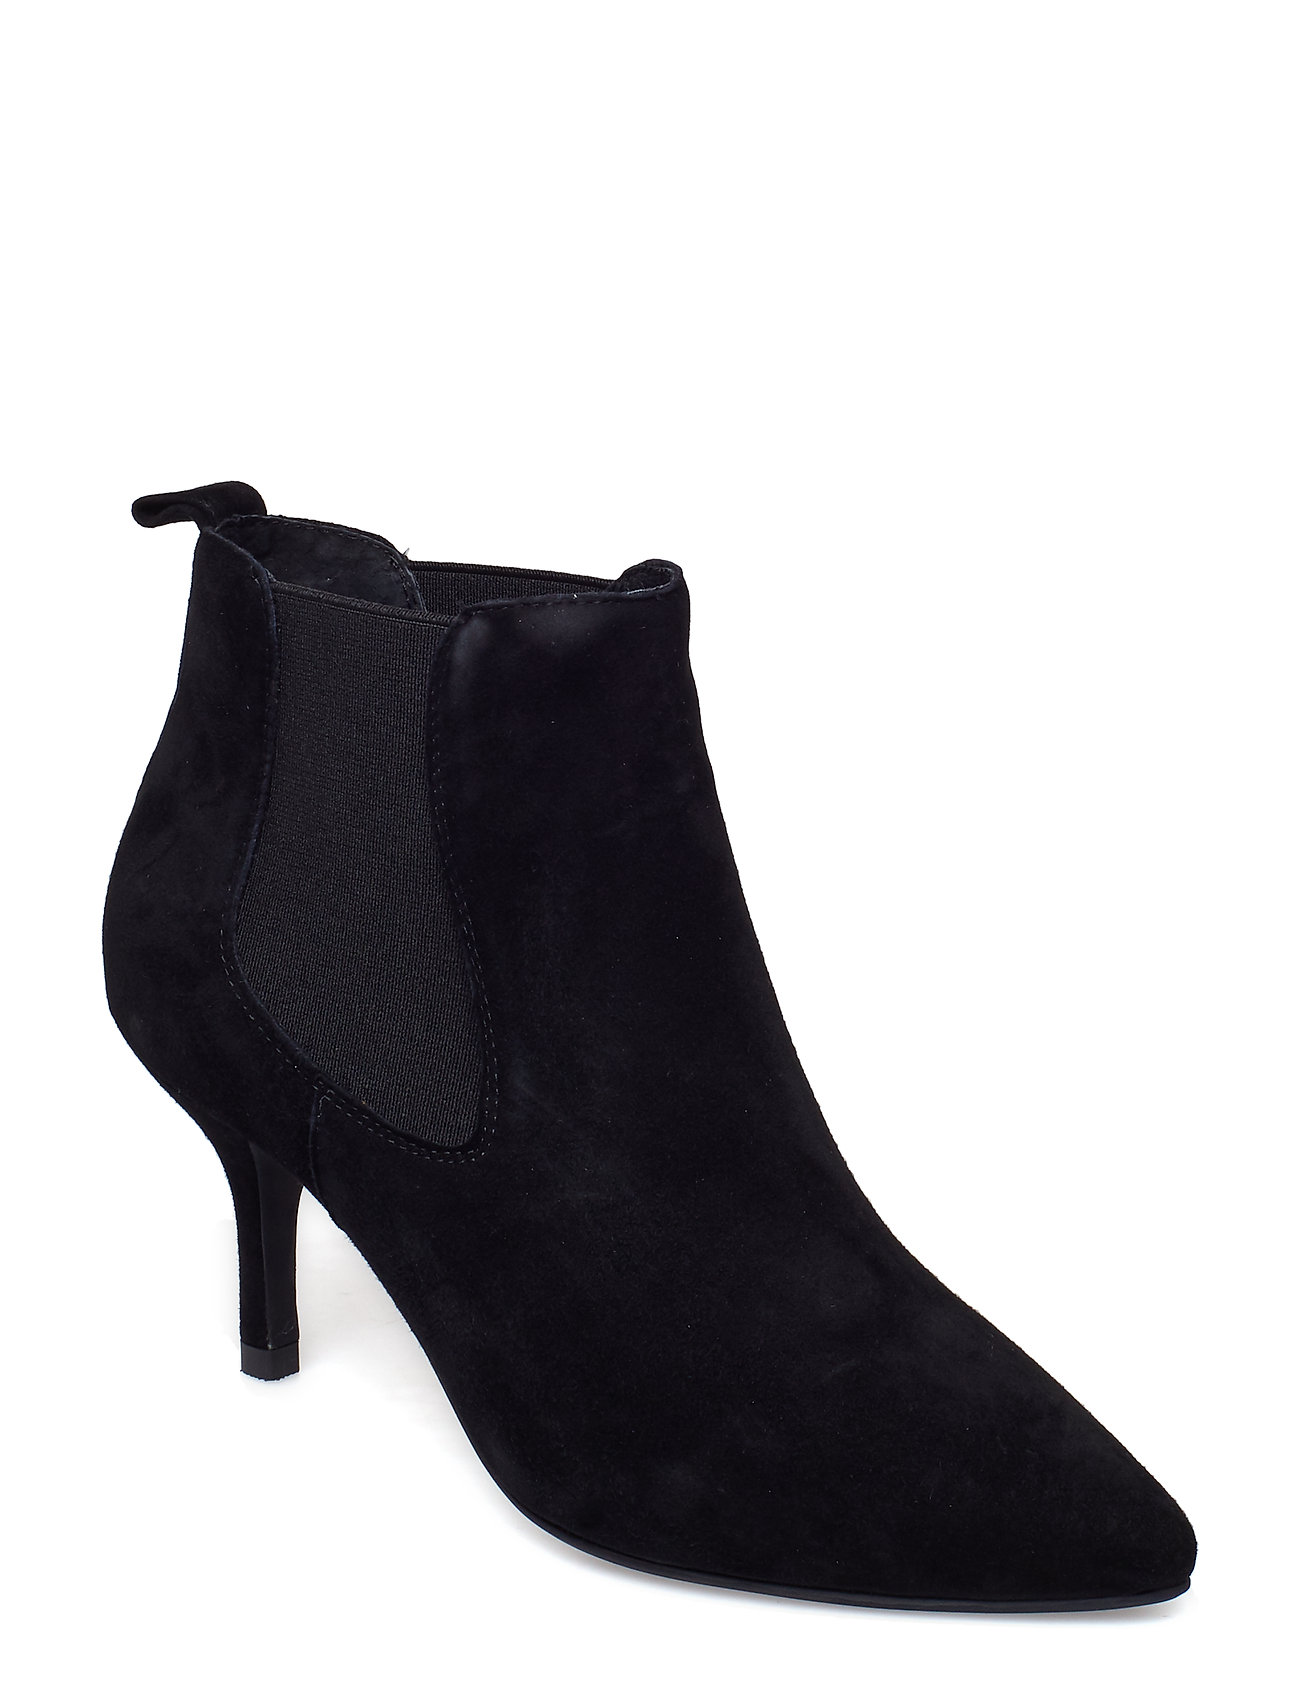 Image of Agnete Chelsea S Shoes Boots Ankle Boots Ankle Boot - Heel Sort Shoe The Bear (3406154425)